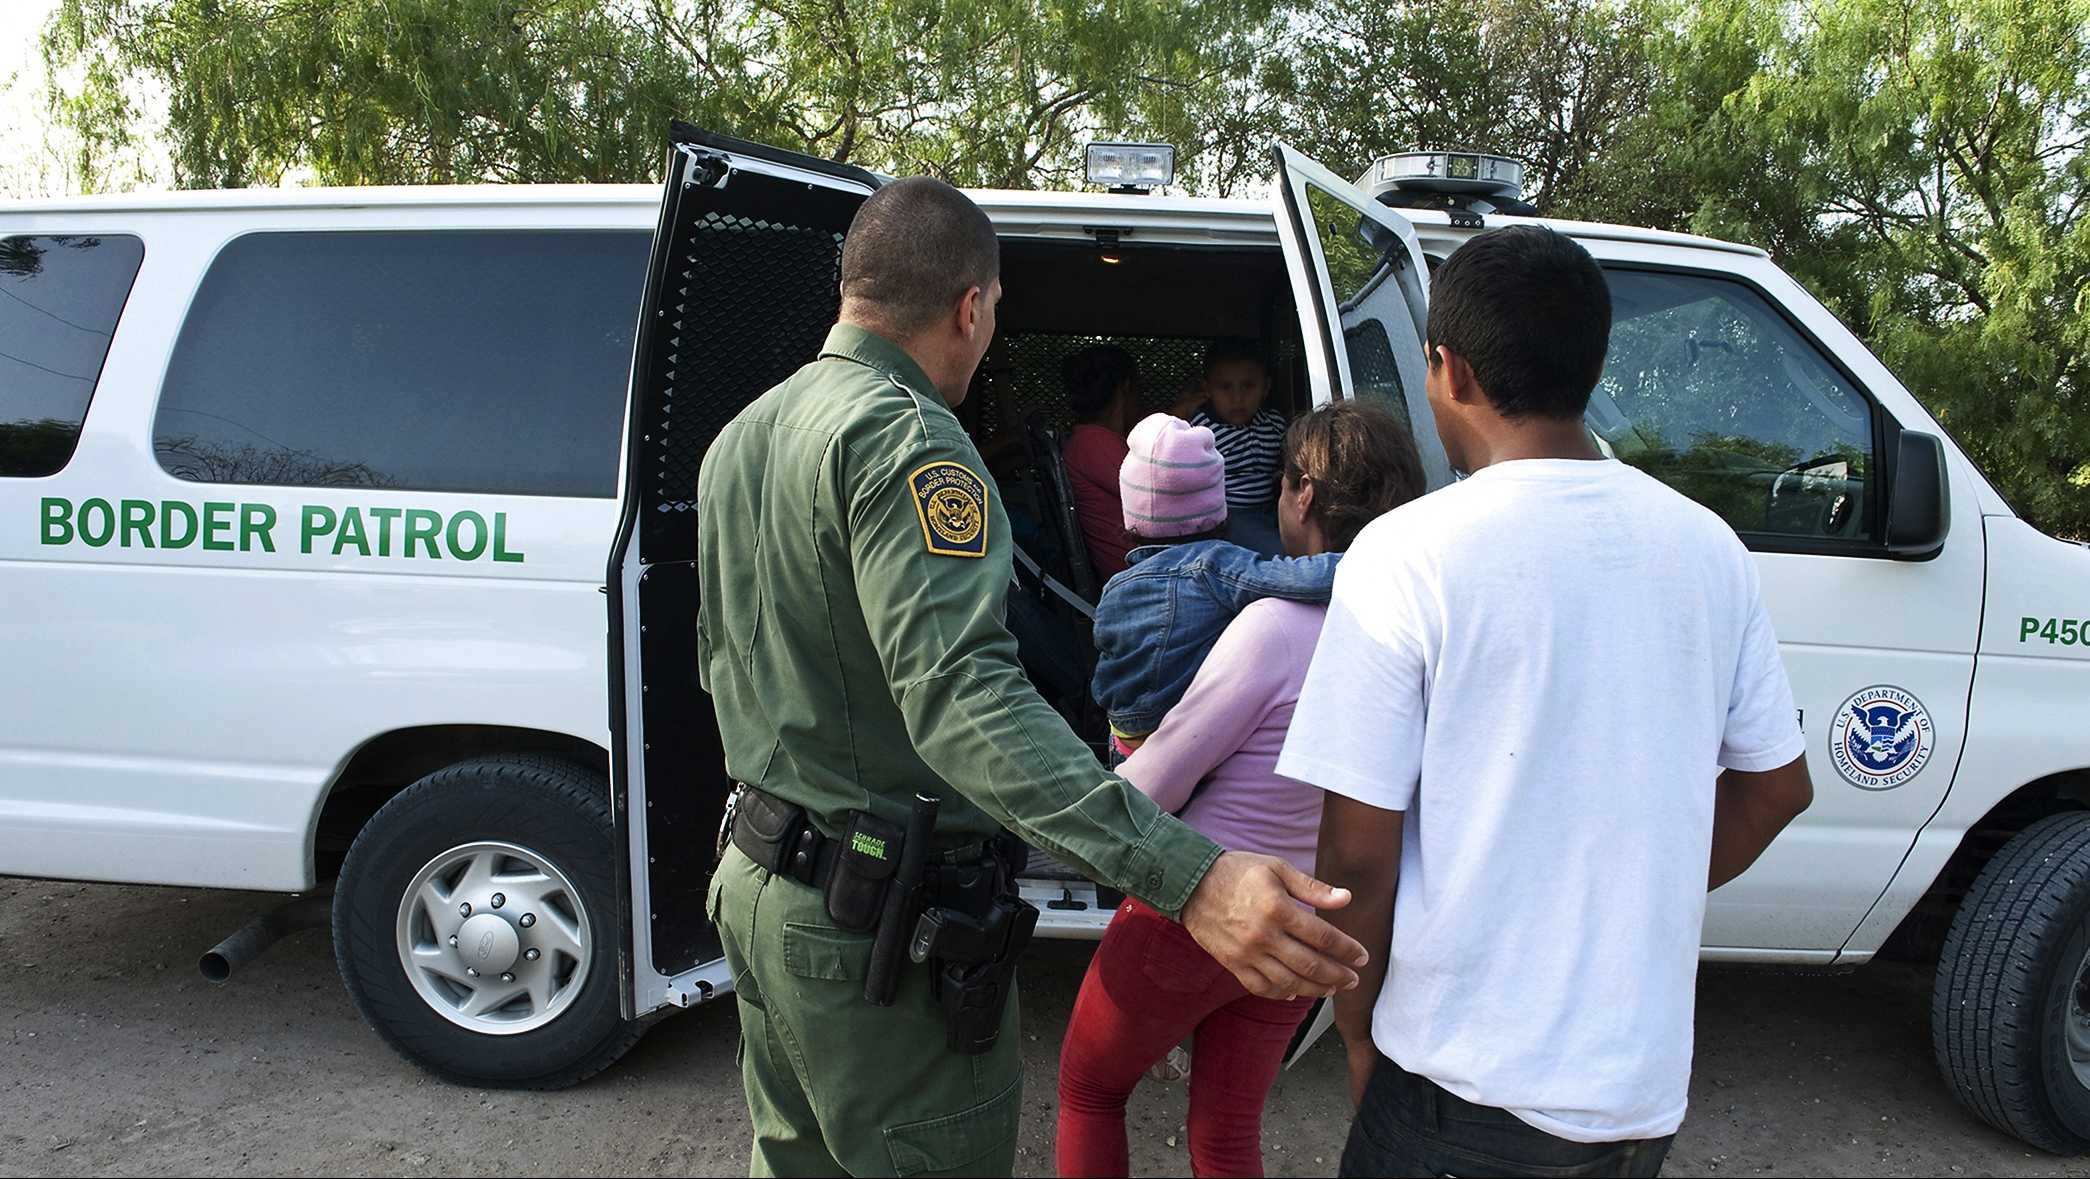 U.S. Customs and Border Protection officers provide assistance to unaccompanied children after they crossed the border into the United States illegally.  (June 2014)